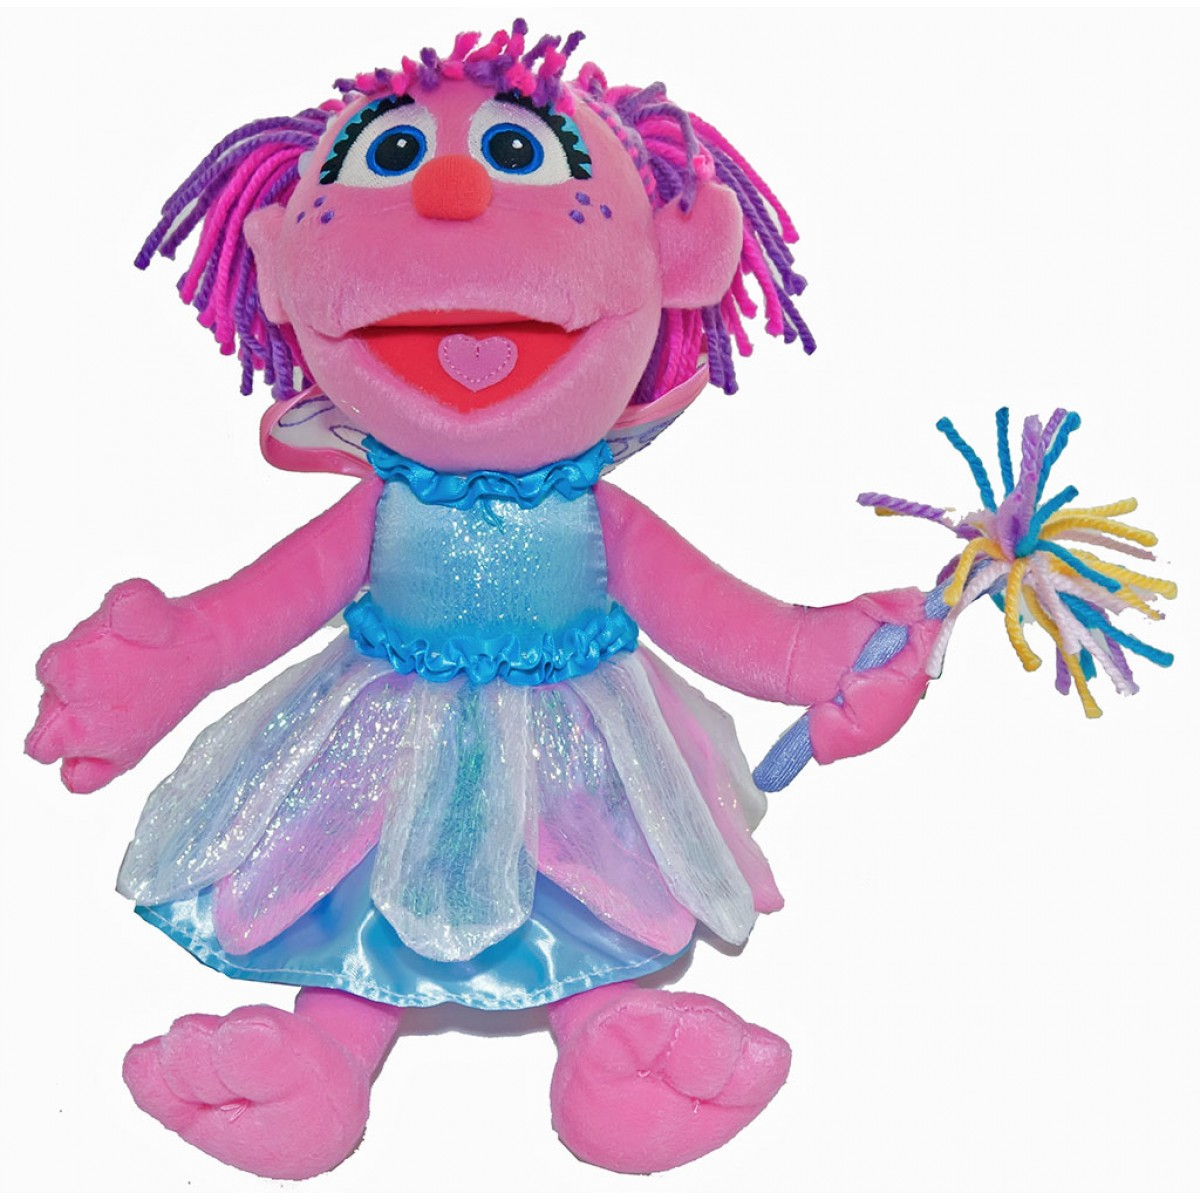 1200x1200 Sesame Street Abby Cadabby Plush Soft Toy